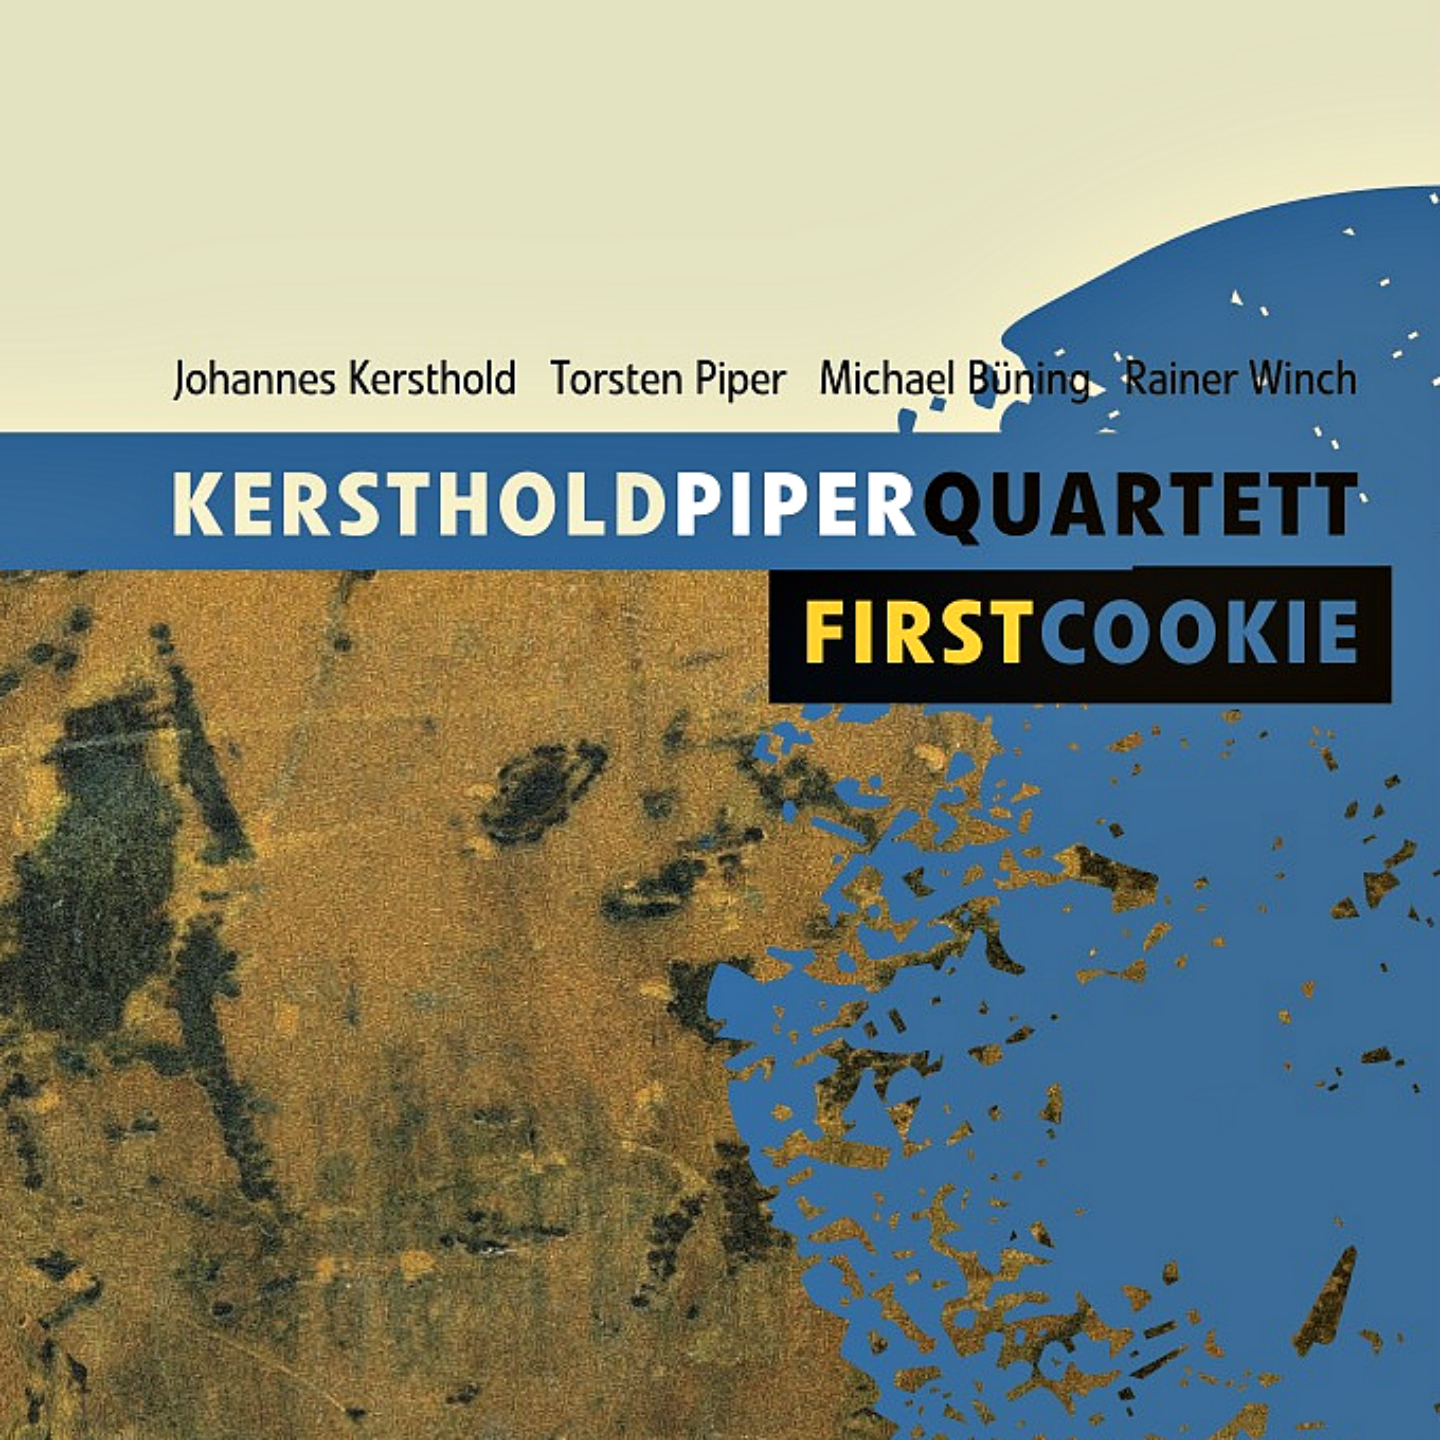 First Cookie - Kersthold Piper Quartett